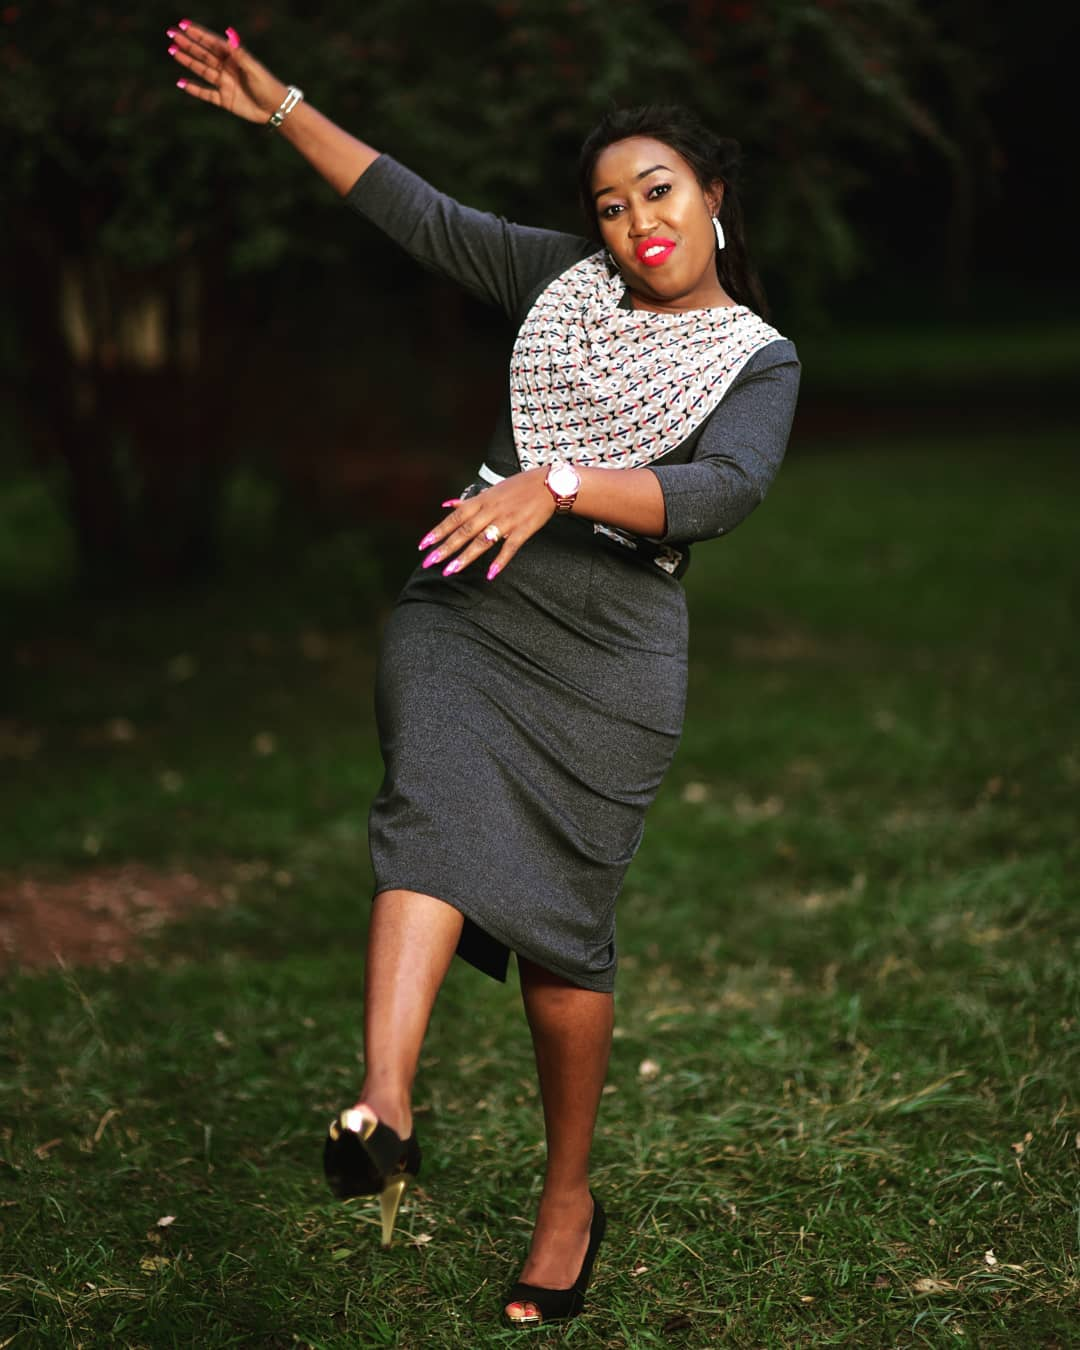 42790691 1103628696454171 8105753983735041312 n - Mrembo wa Yesu! Check out photos of Prophetess Monicah's unique dress code